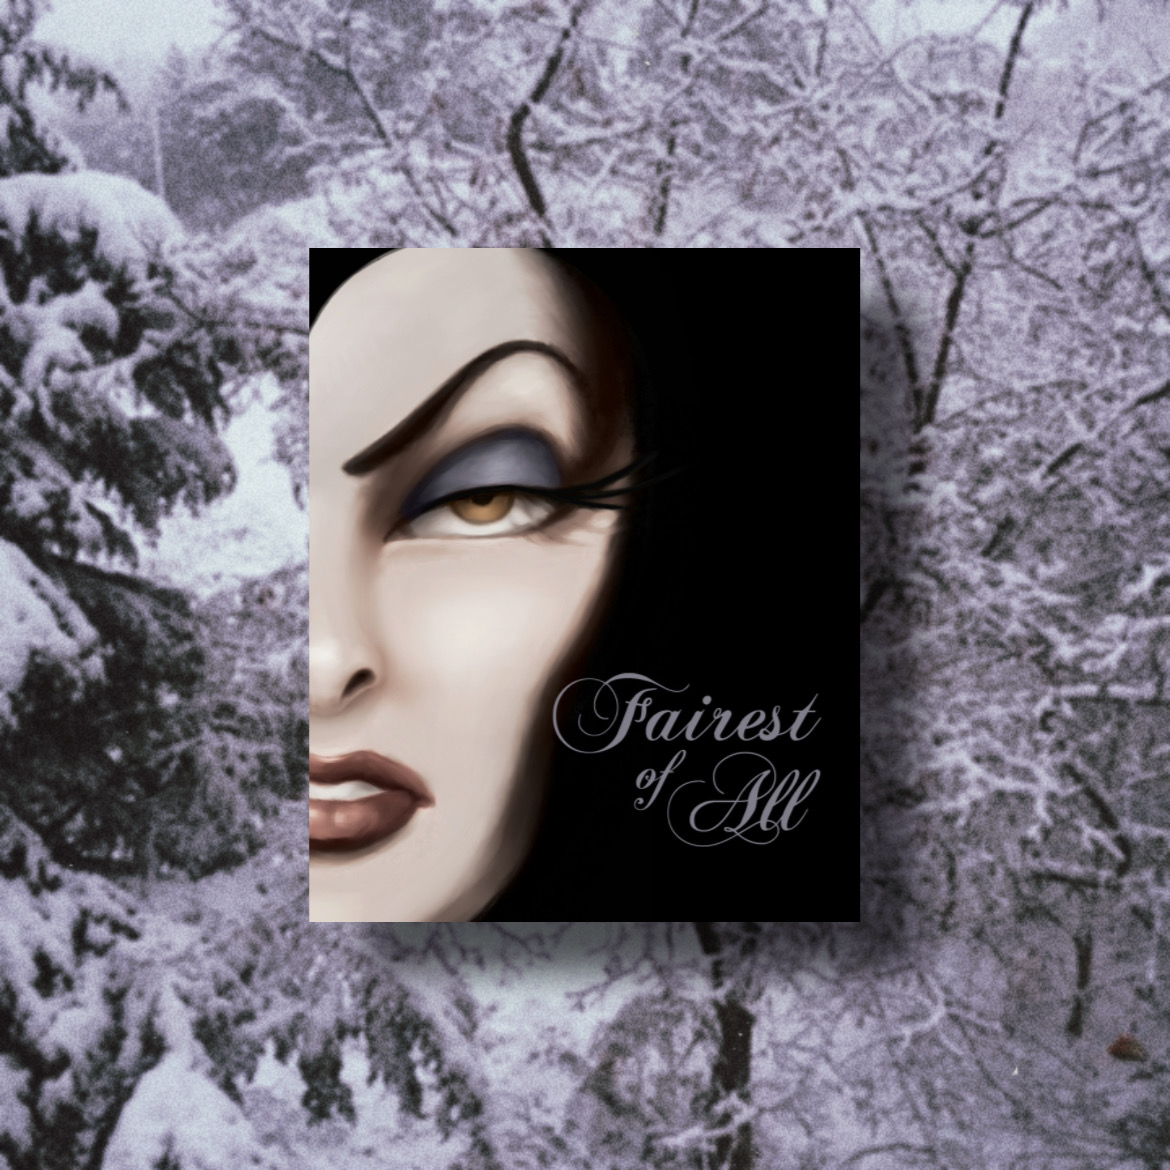 Background of snow covered trees, book cover for Fairest of All by Serena Valentino